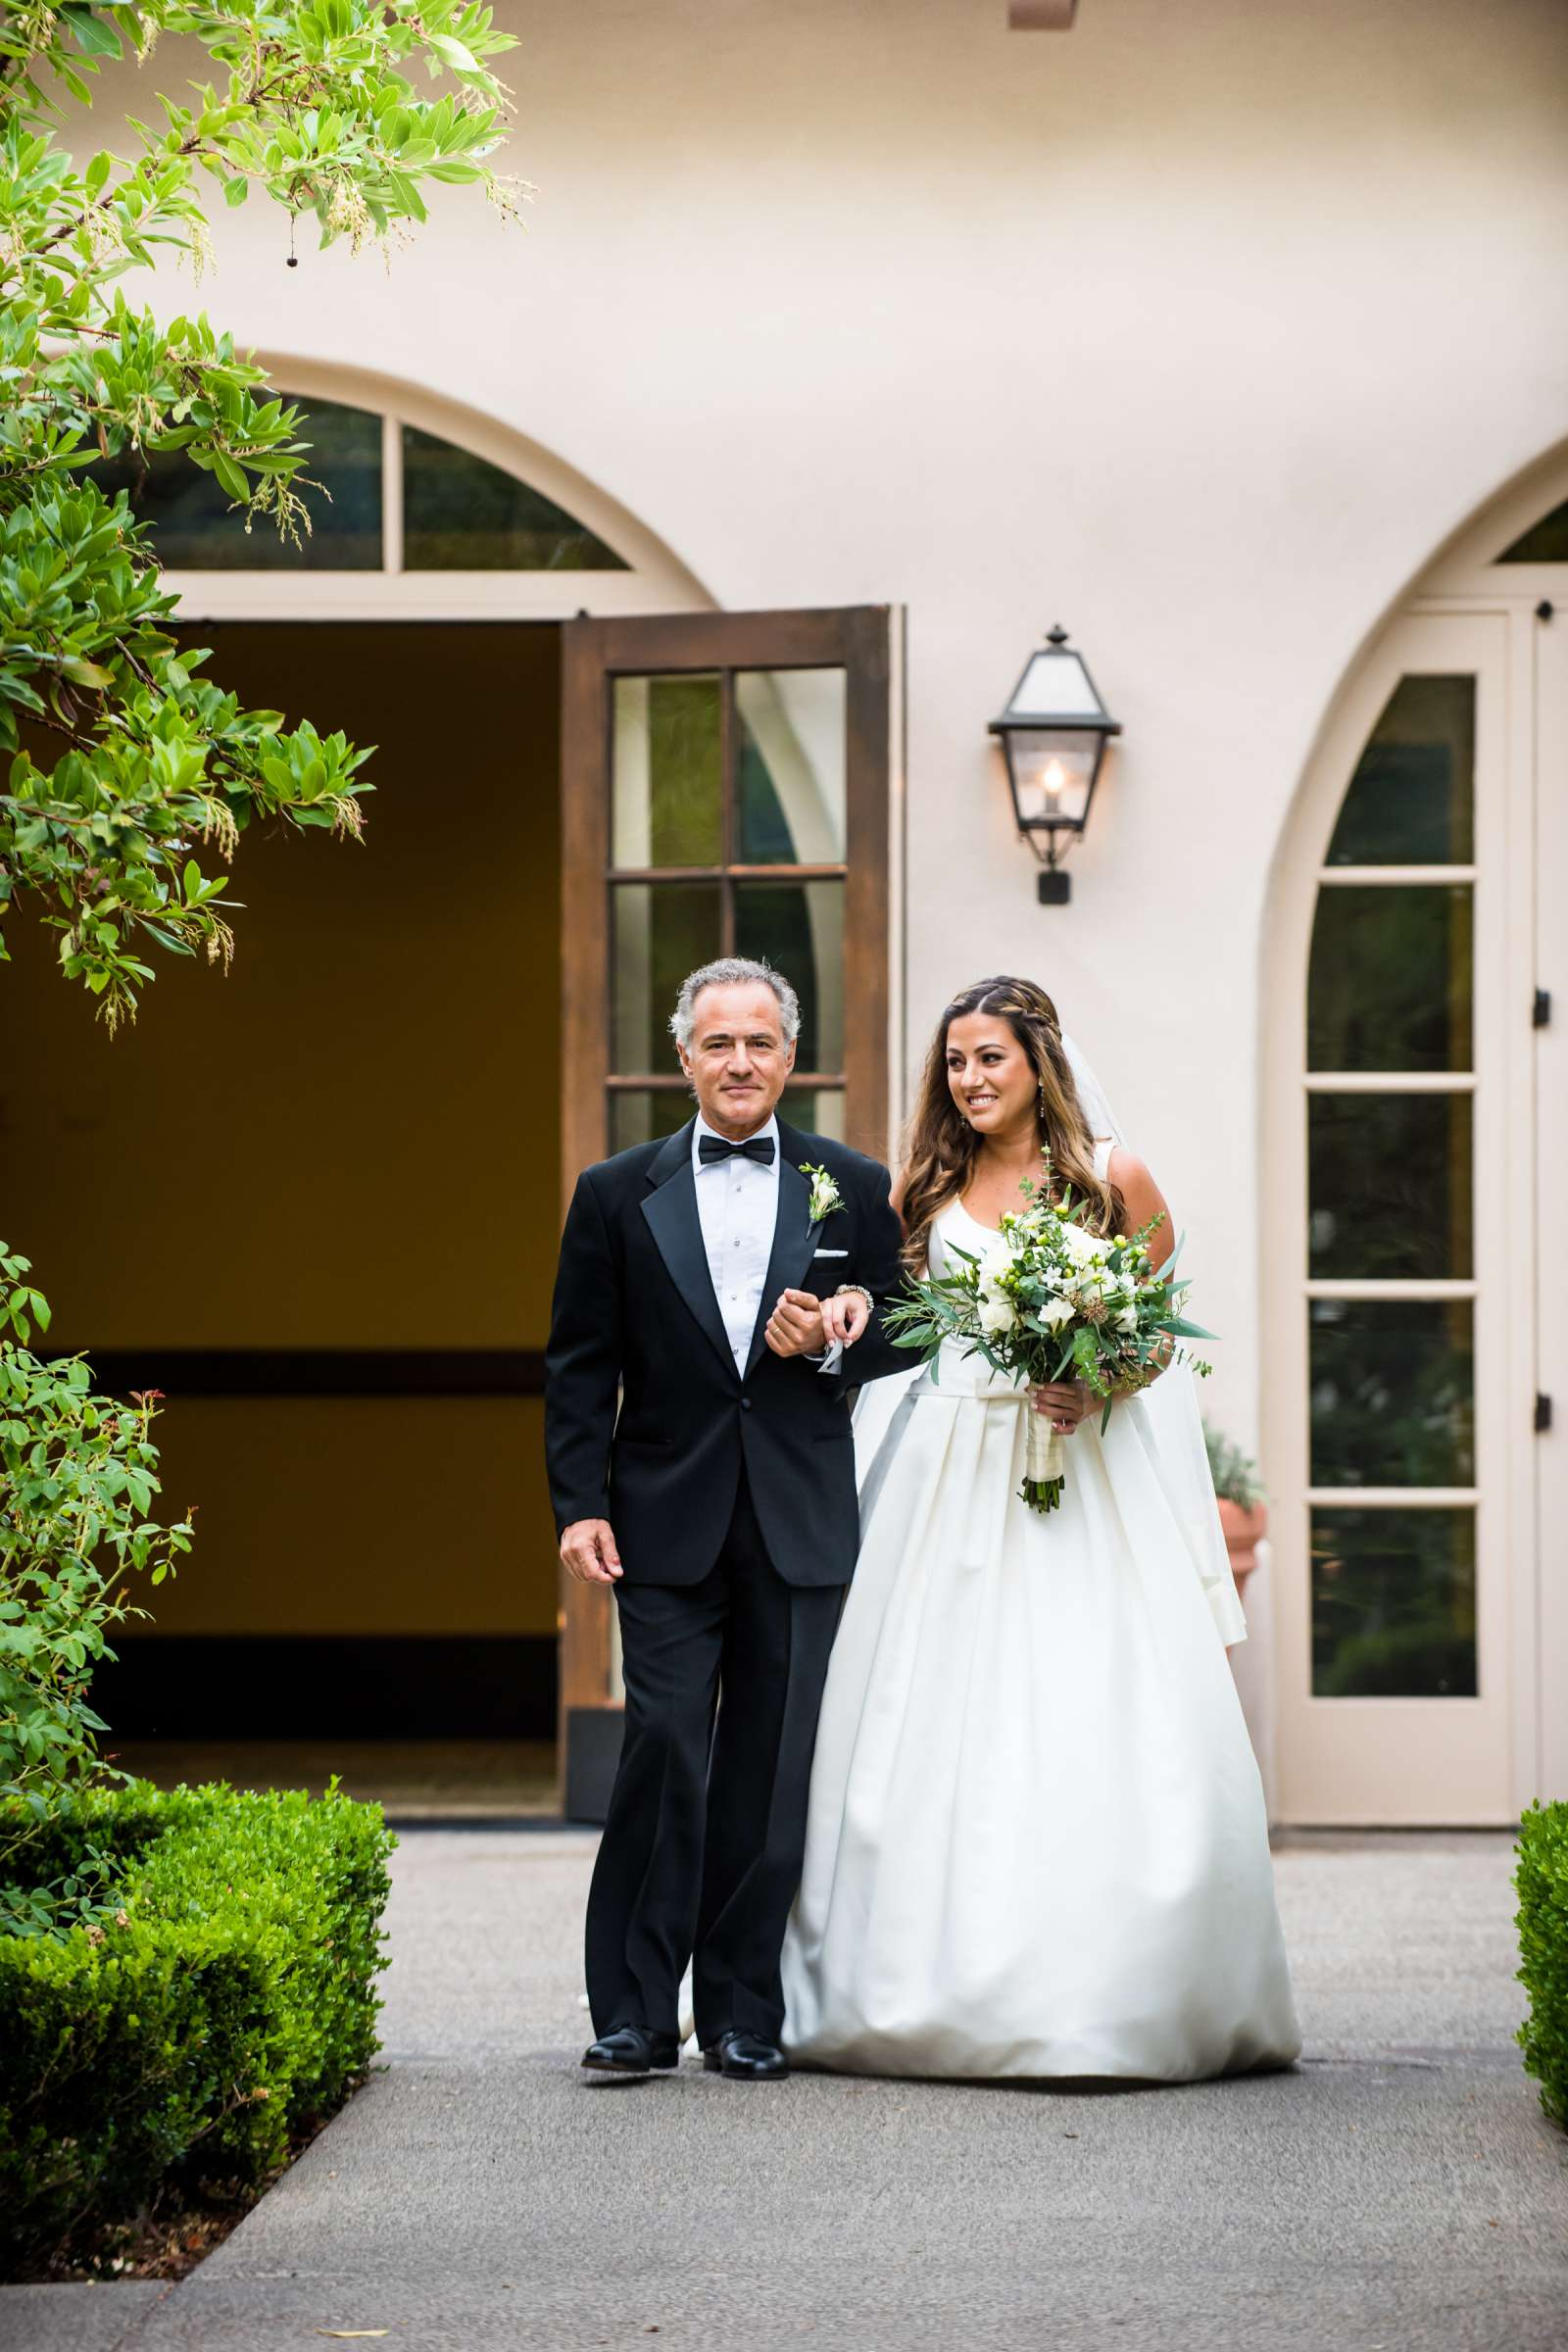 Rancho Bernardo Inn Wedding coordinated by Très Chic Events, Stefania and Nicholas Wedding Photo #32 by True Photography